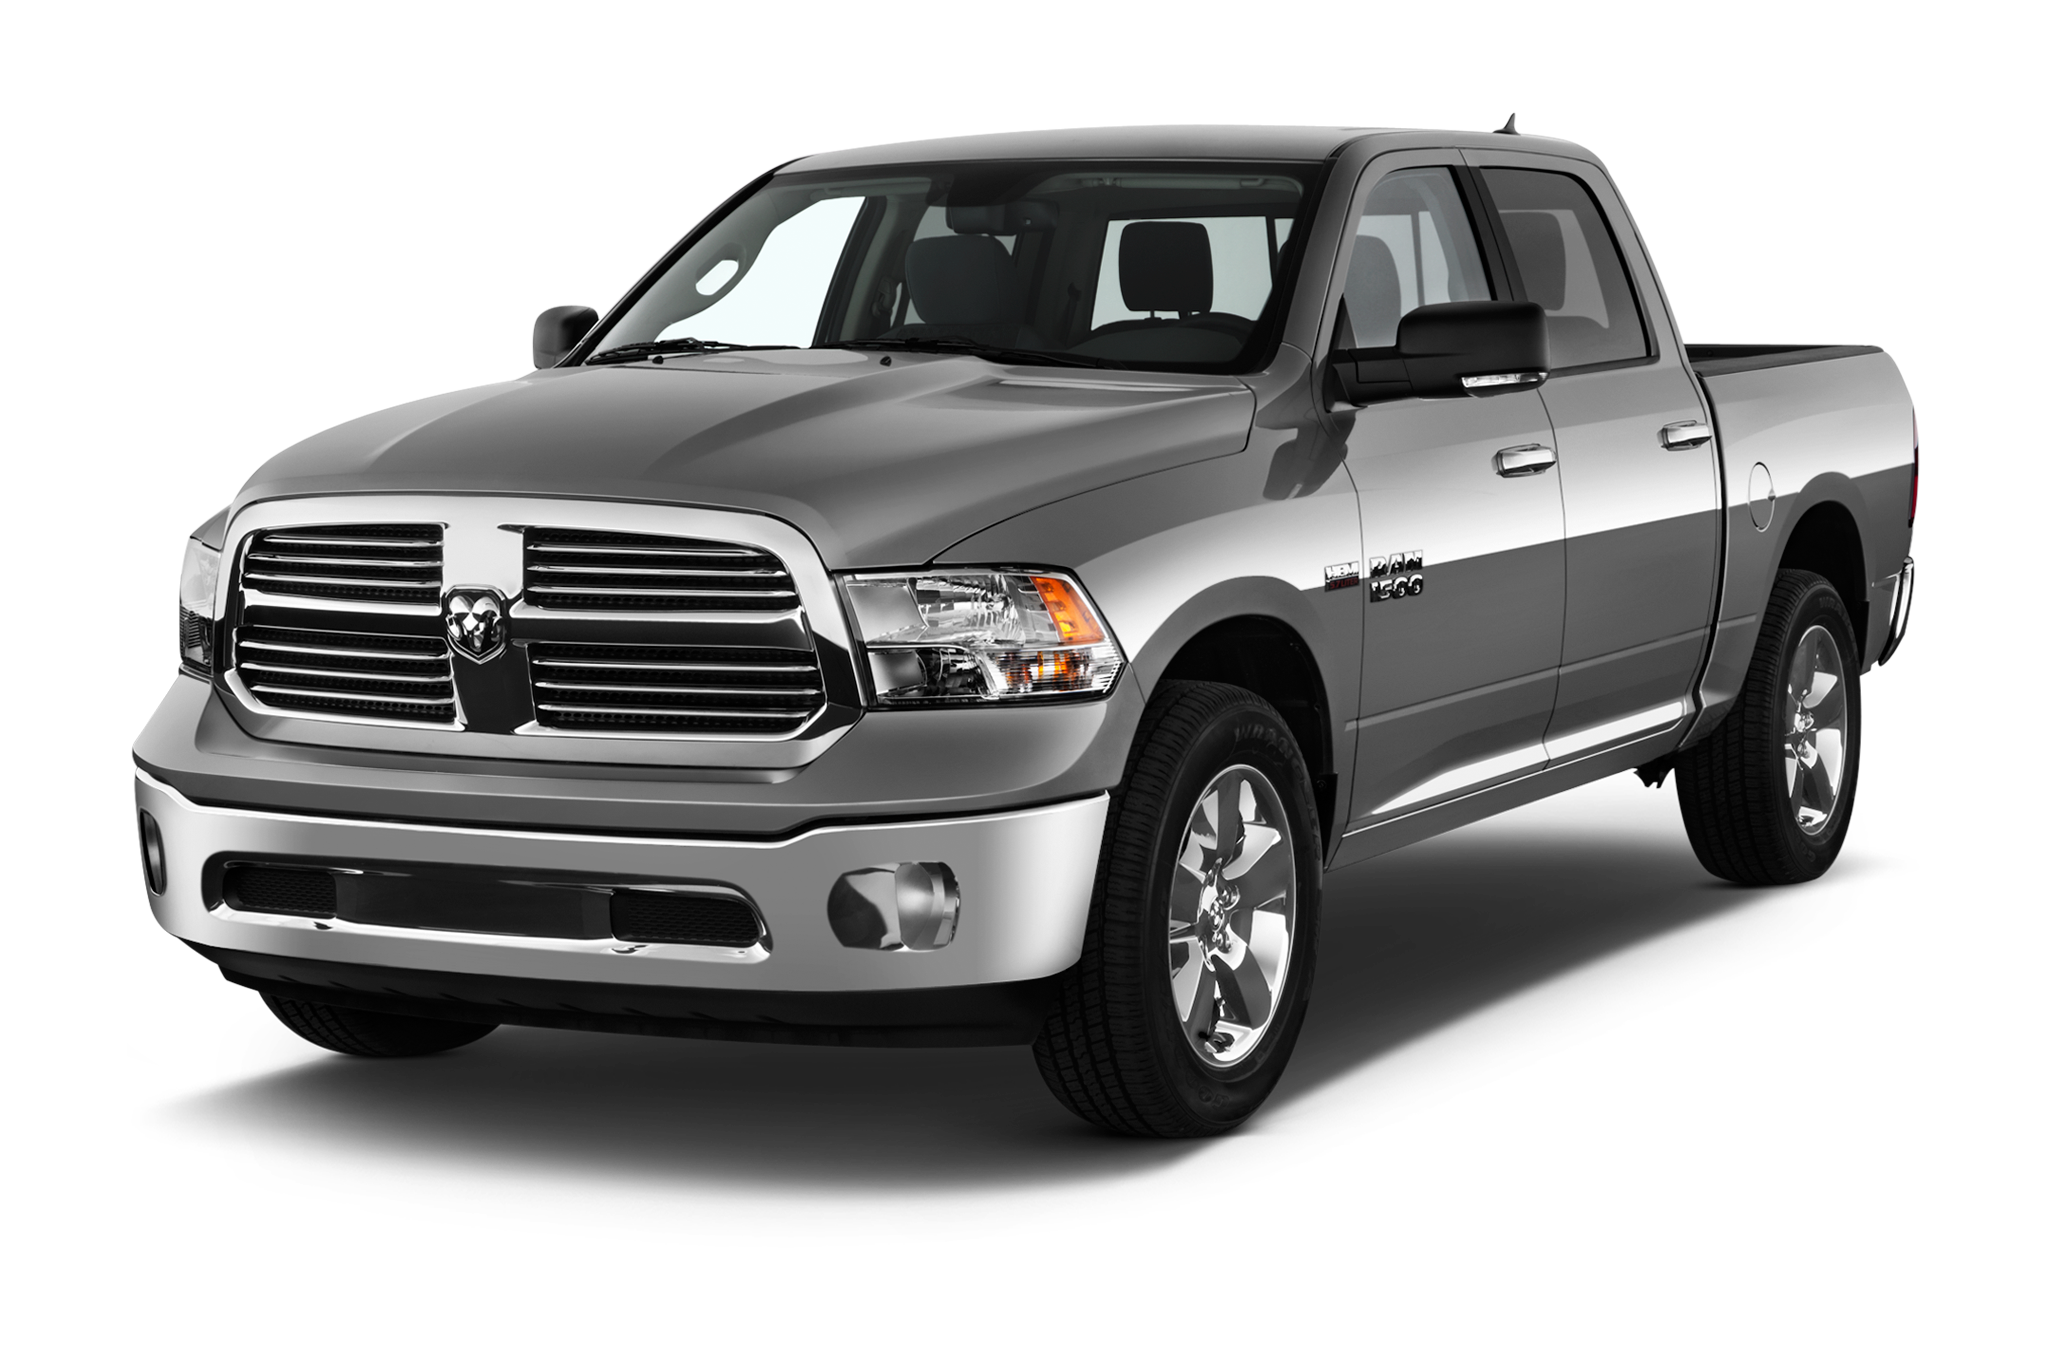 A used dark gray Ram 1500